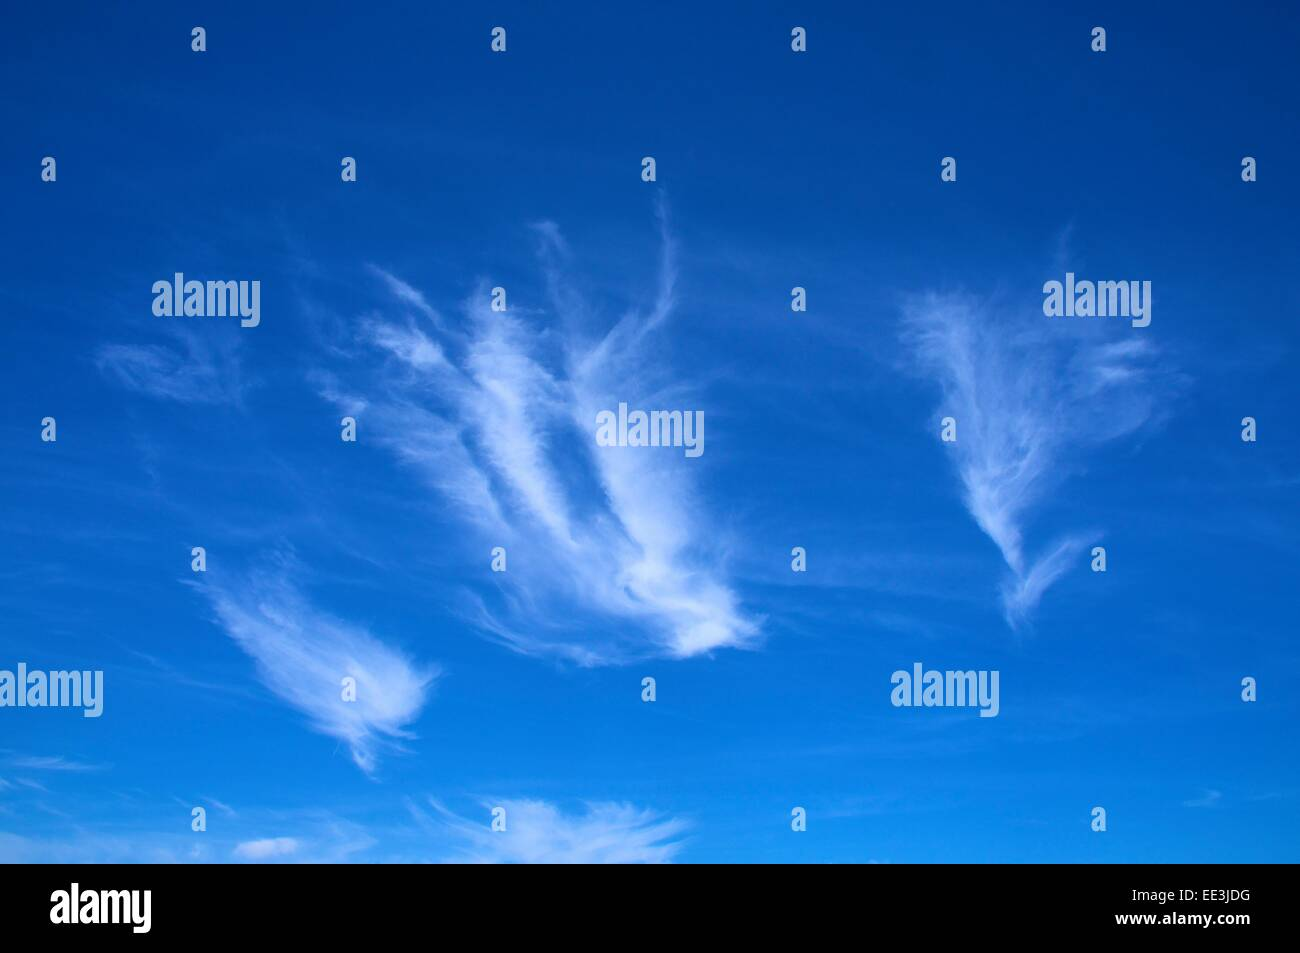 Cirrus clouds in blue sky. - Stock Image